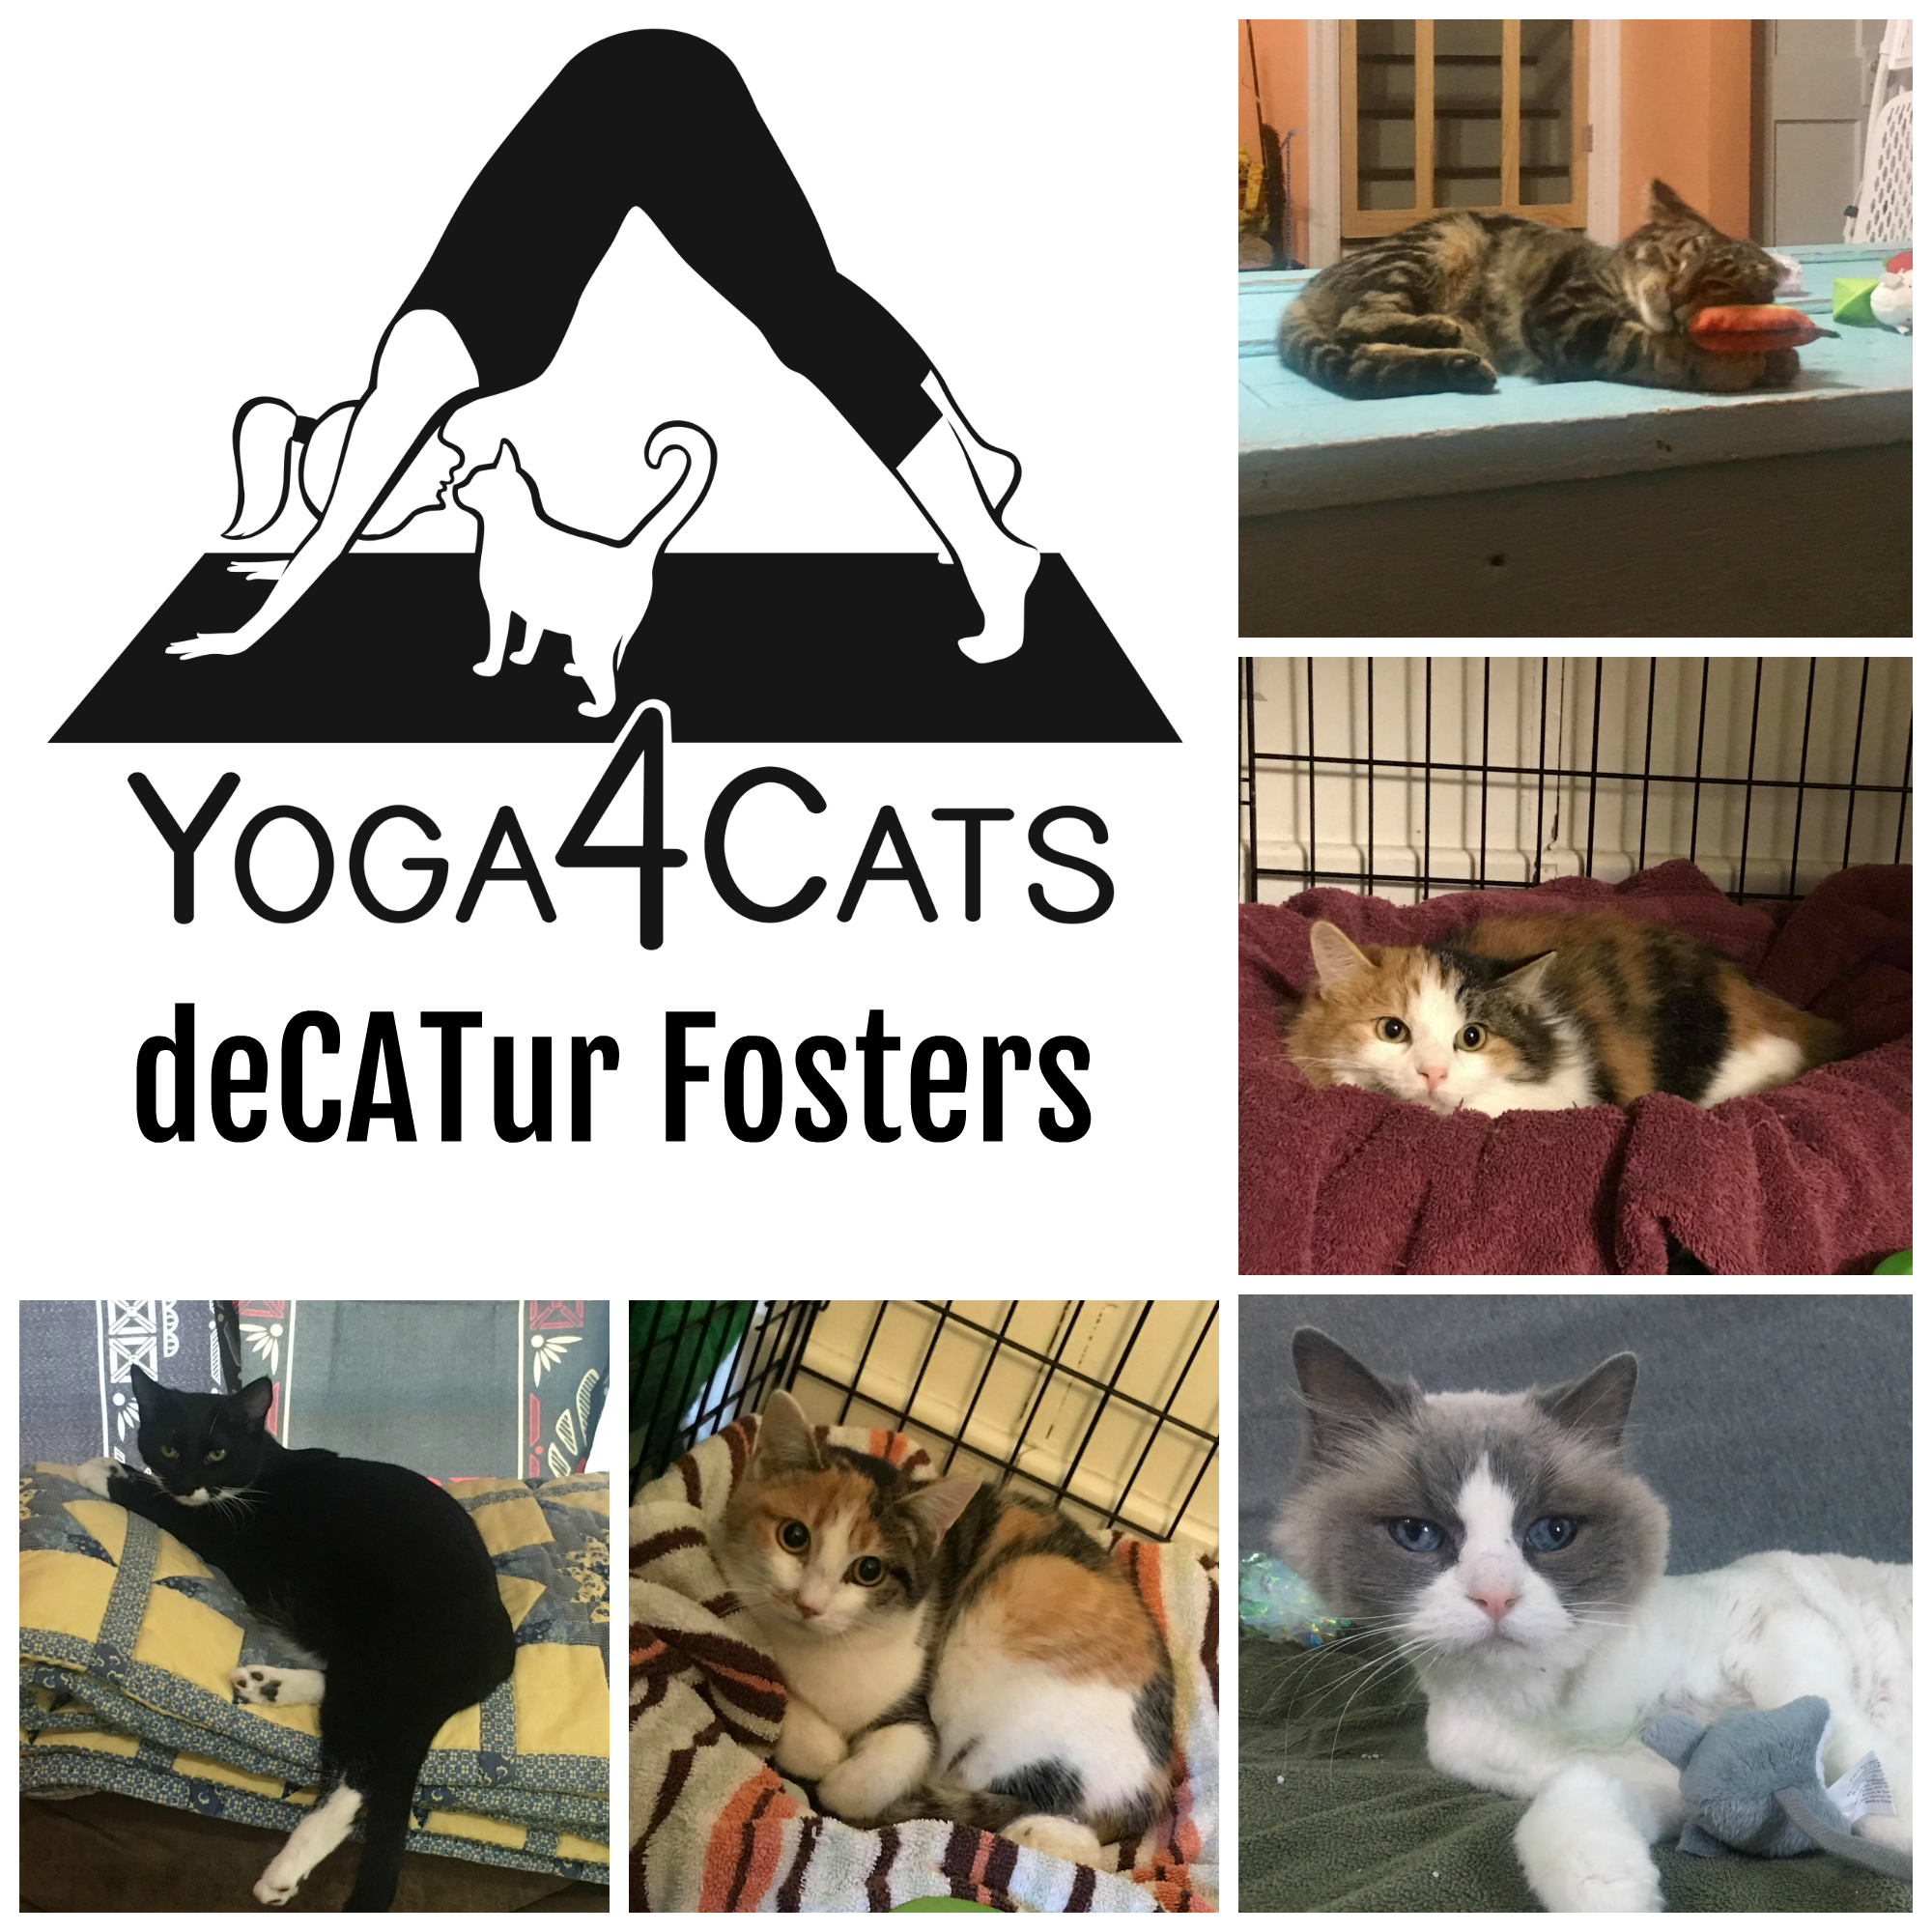 Adoptable deCATur Fosters